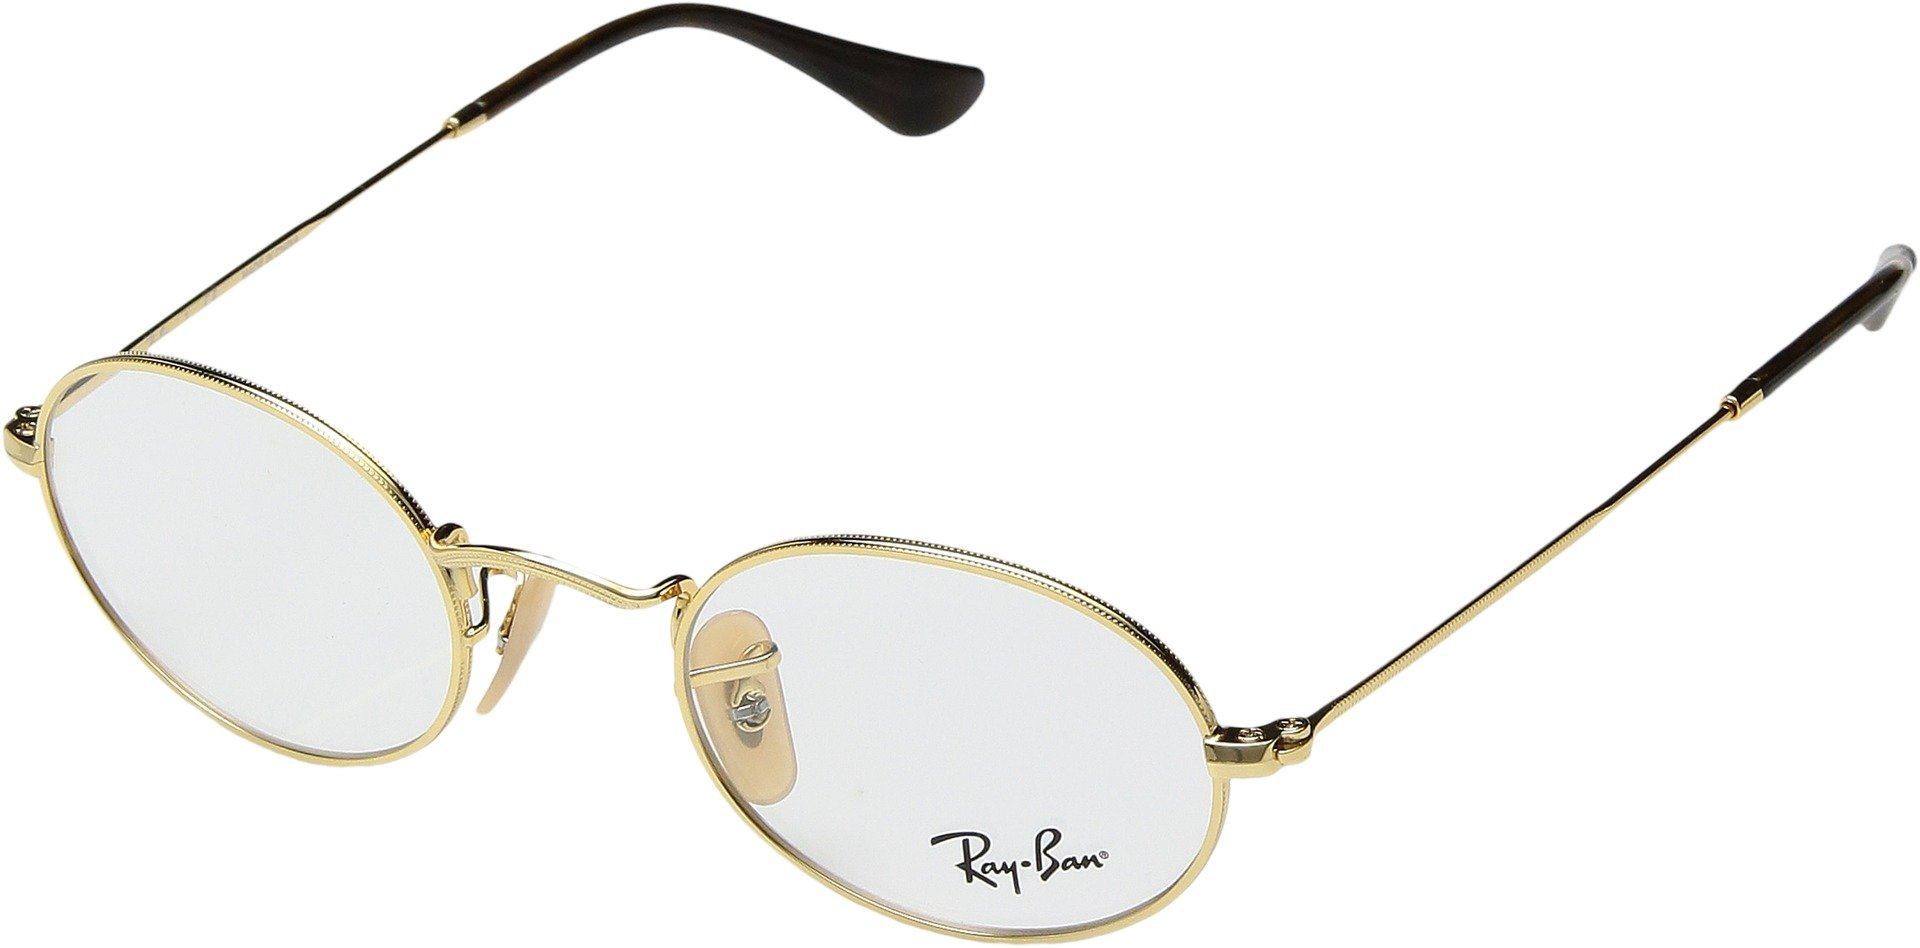 Ray-Ban Unisex 0RX3547V 46mm Arista One Size